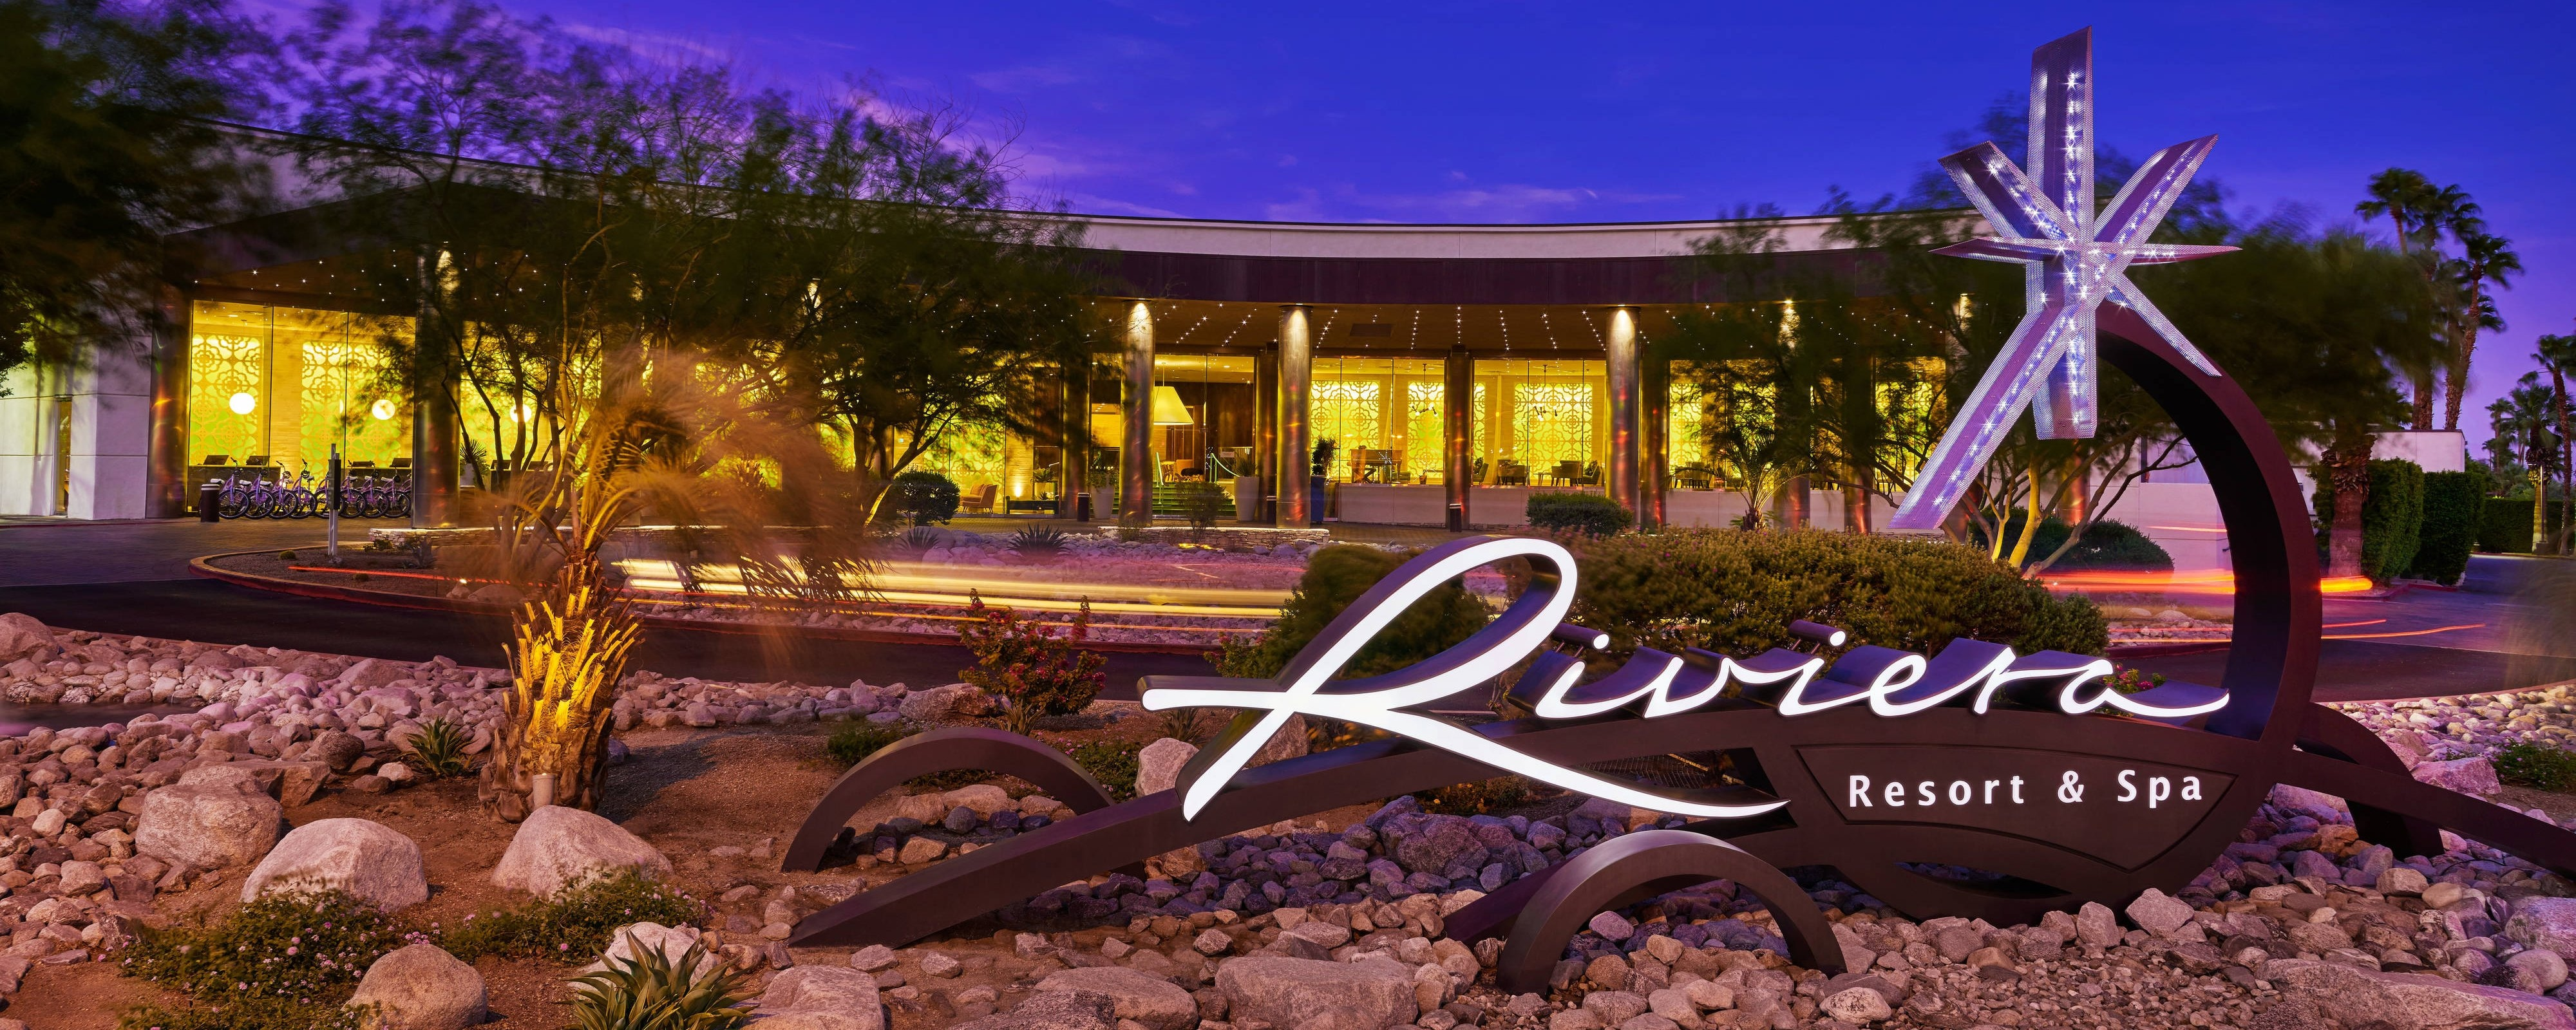 Palm Springs Resorts >> Palm Springs Hotels The Riviera Palm Springs A Tribute Portfolio